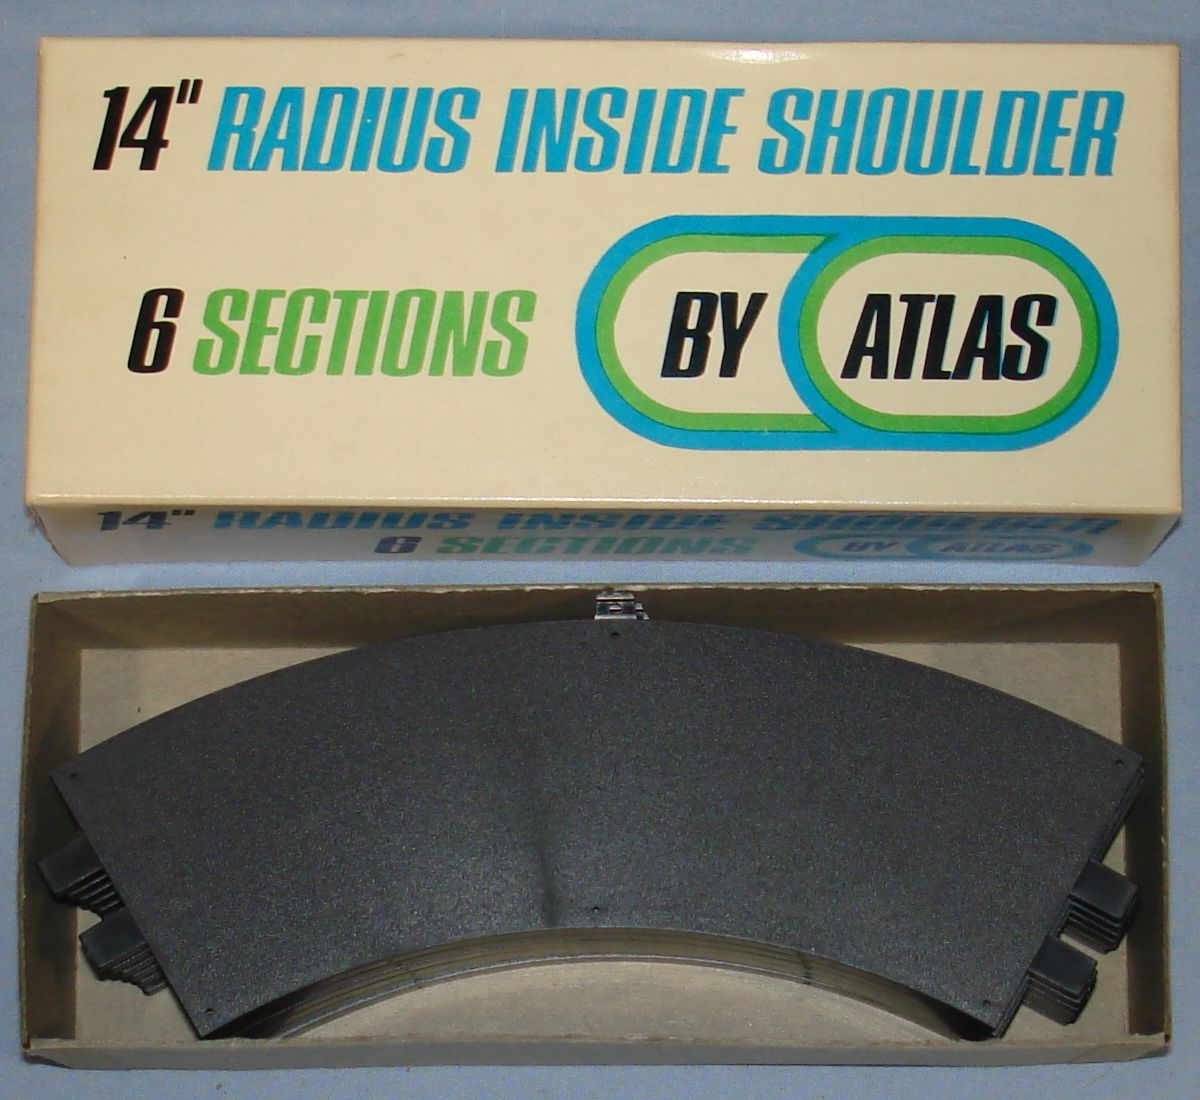 Atlas 124 132 Slot Car Racing Track 14 Inch Radius Inside Shoulders #1595-240